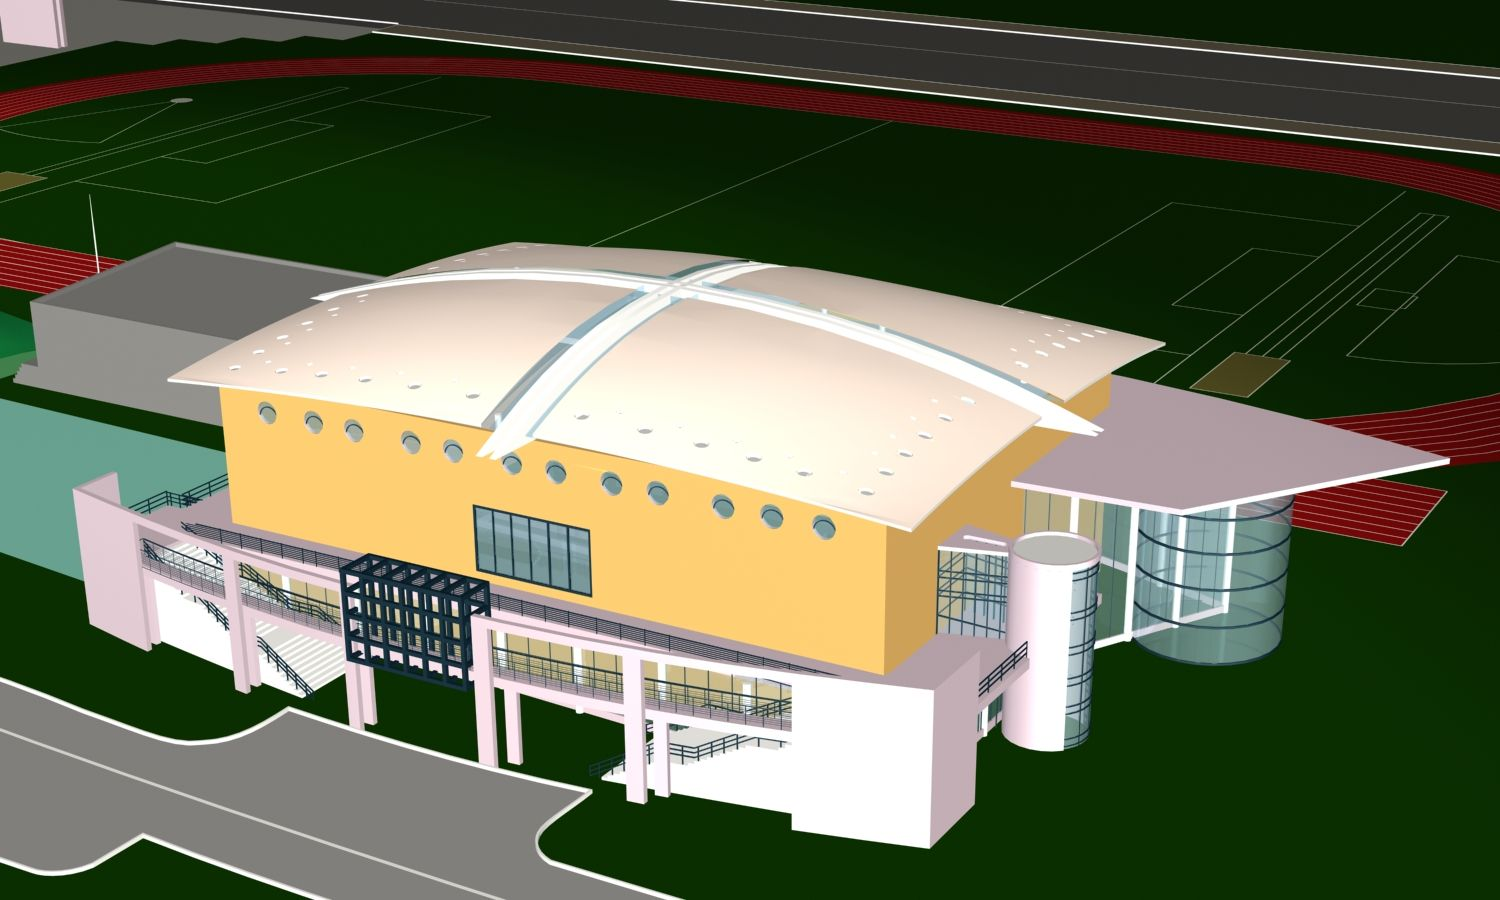 Stadium Design Drawing|Stadium|Arena|3D Ideas|Stadium section drawings Architecture  Projects Cad Drawings Download!!